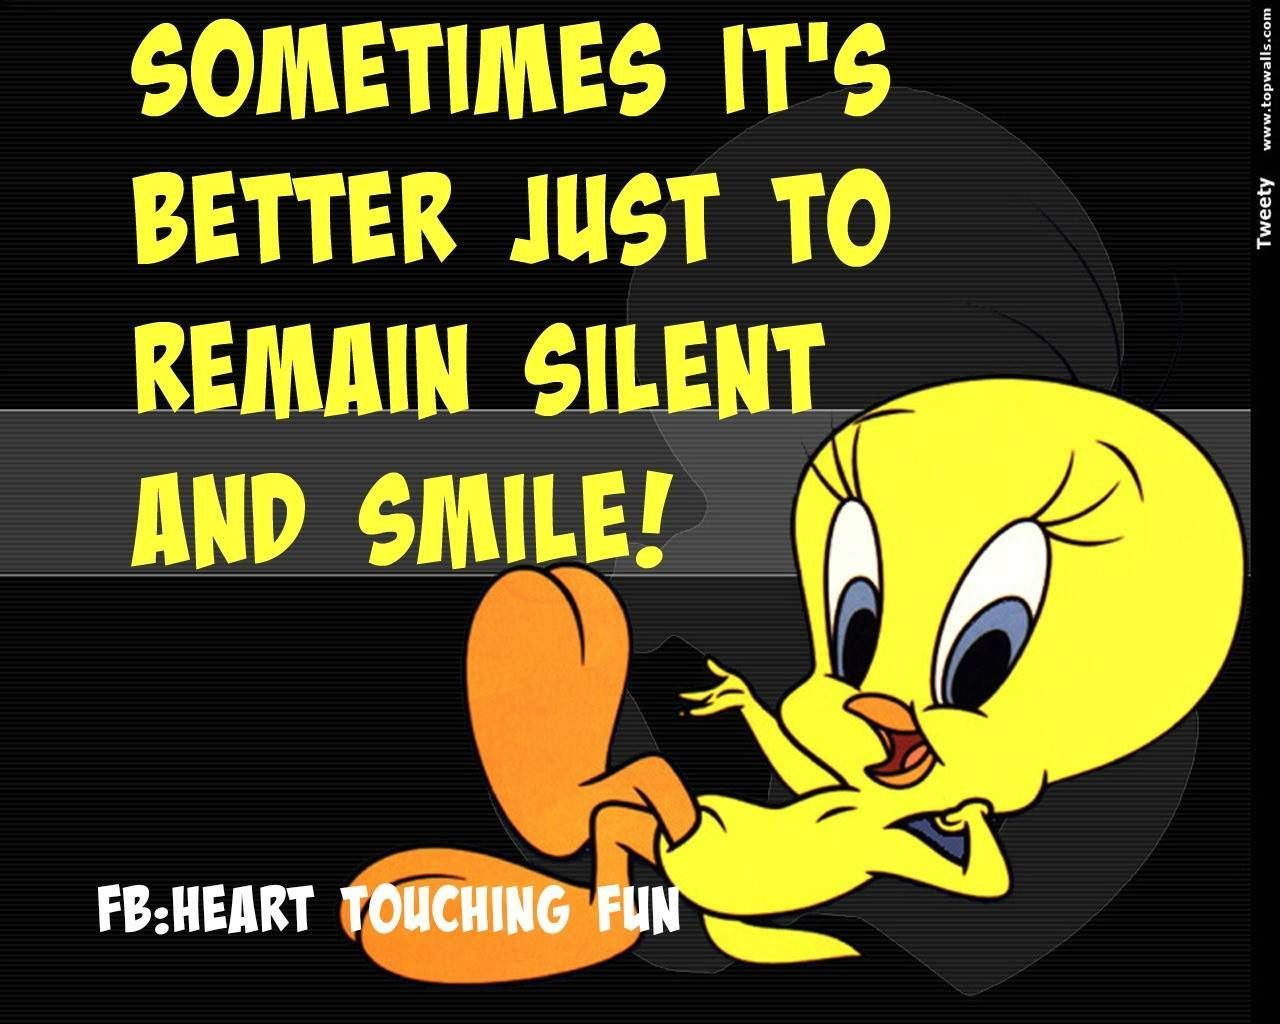 reanain silent and smile funny quotes quote funny quote